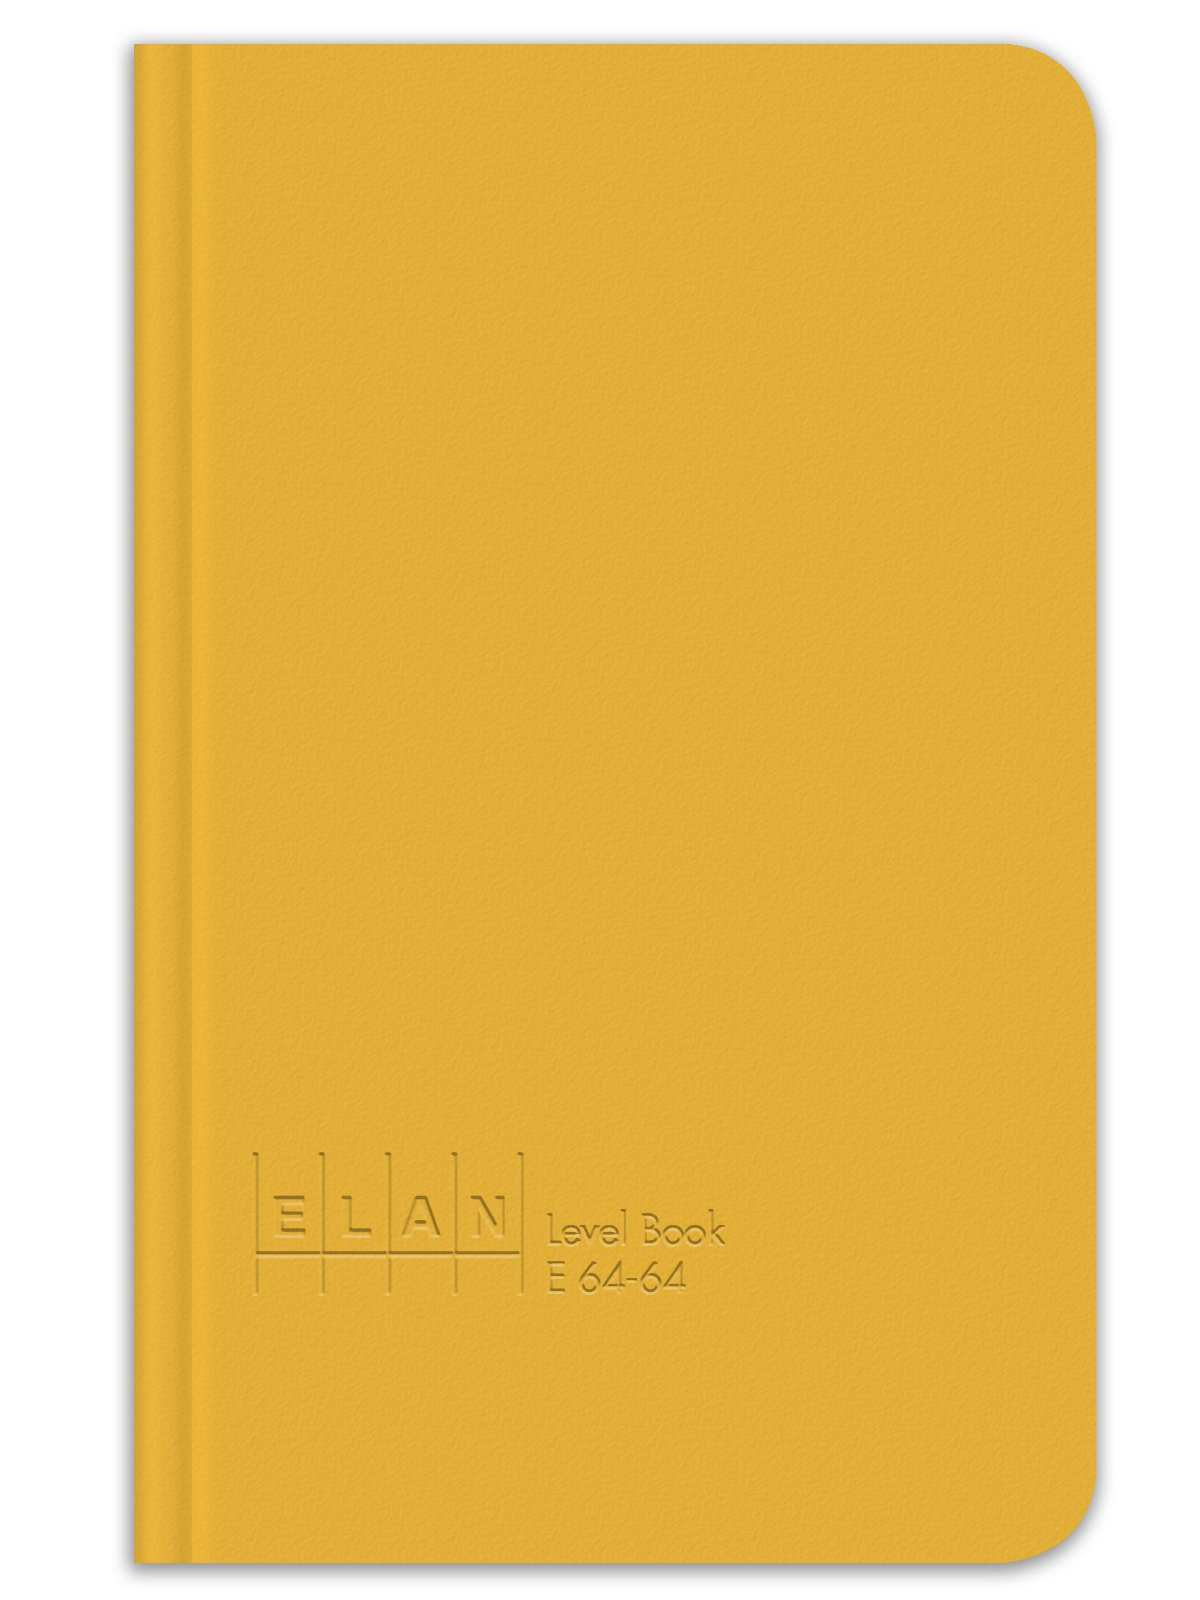 Elan Publishing Company E64-64 Level Book 4 ⅝ x 7 ¼, Yellow Cover (Pack of 6) by Elan Publishing Company